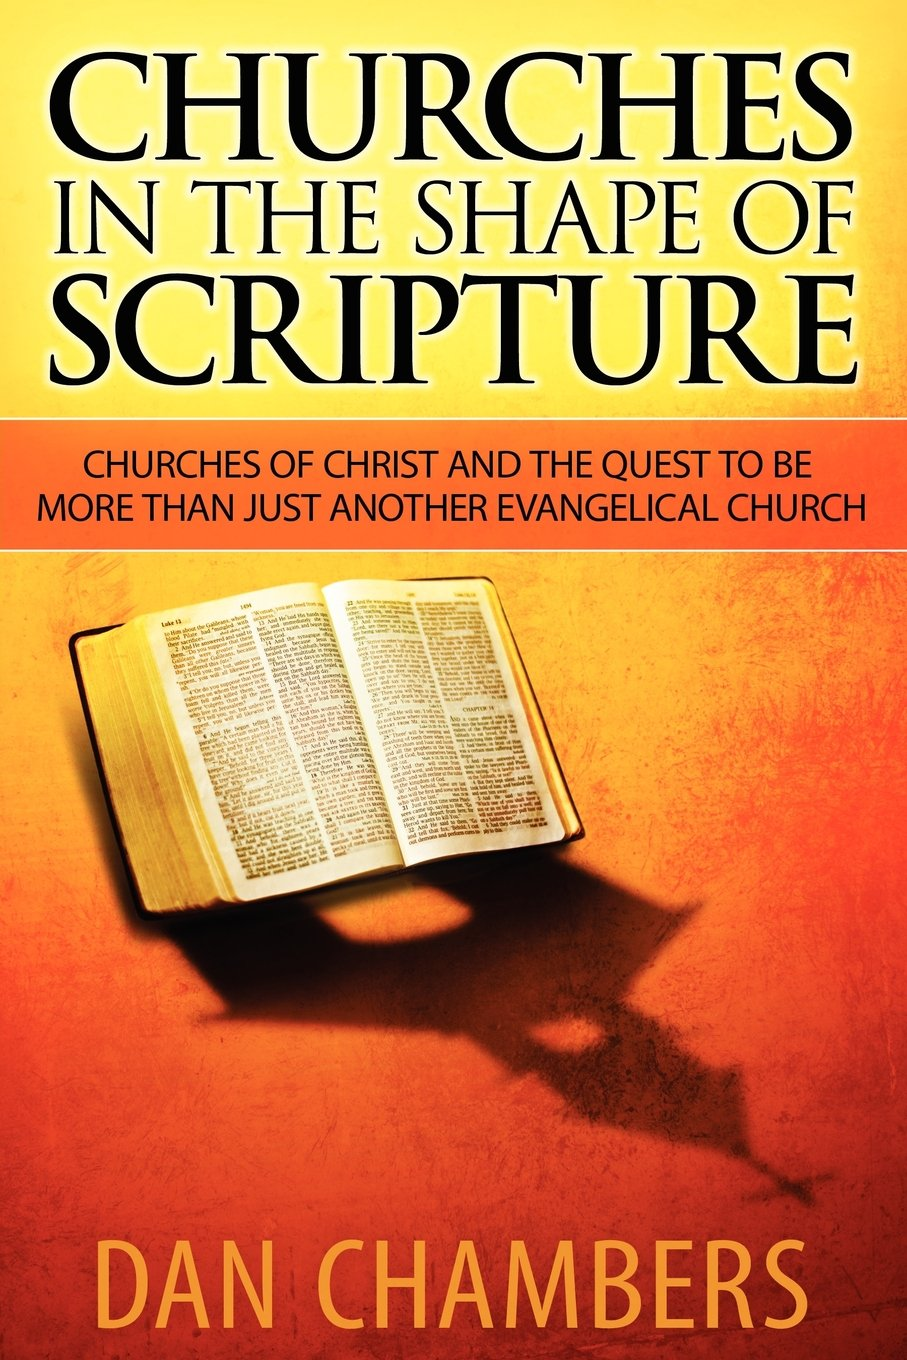 Churches in the Shape of Scripture: Dan Chambers: 9780985890308:  Amazon.com: Books